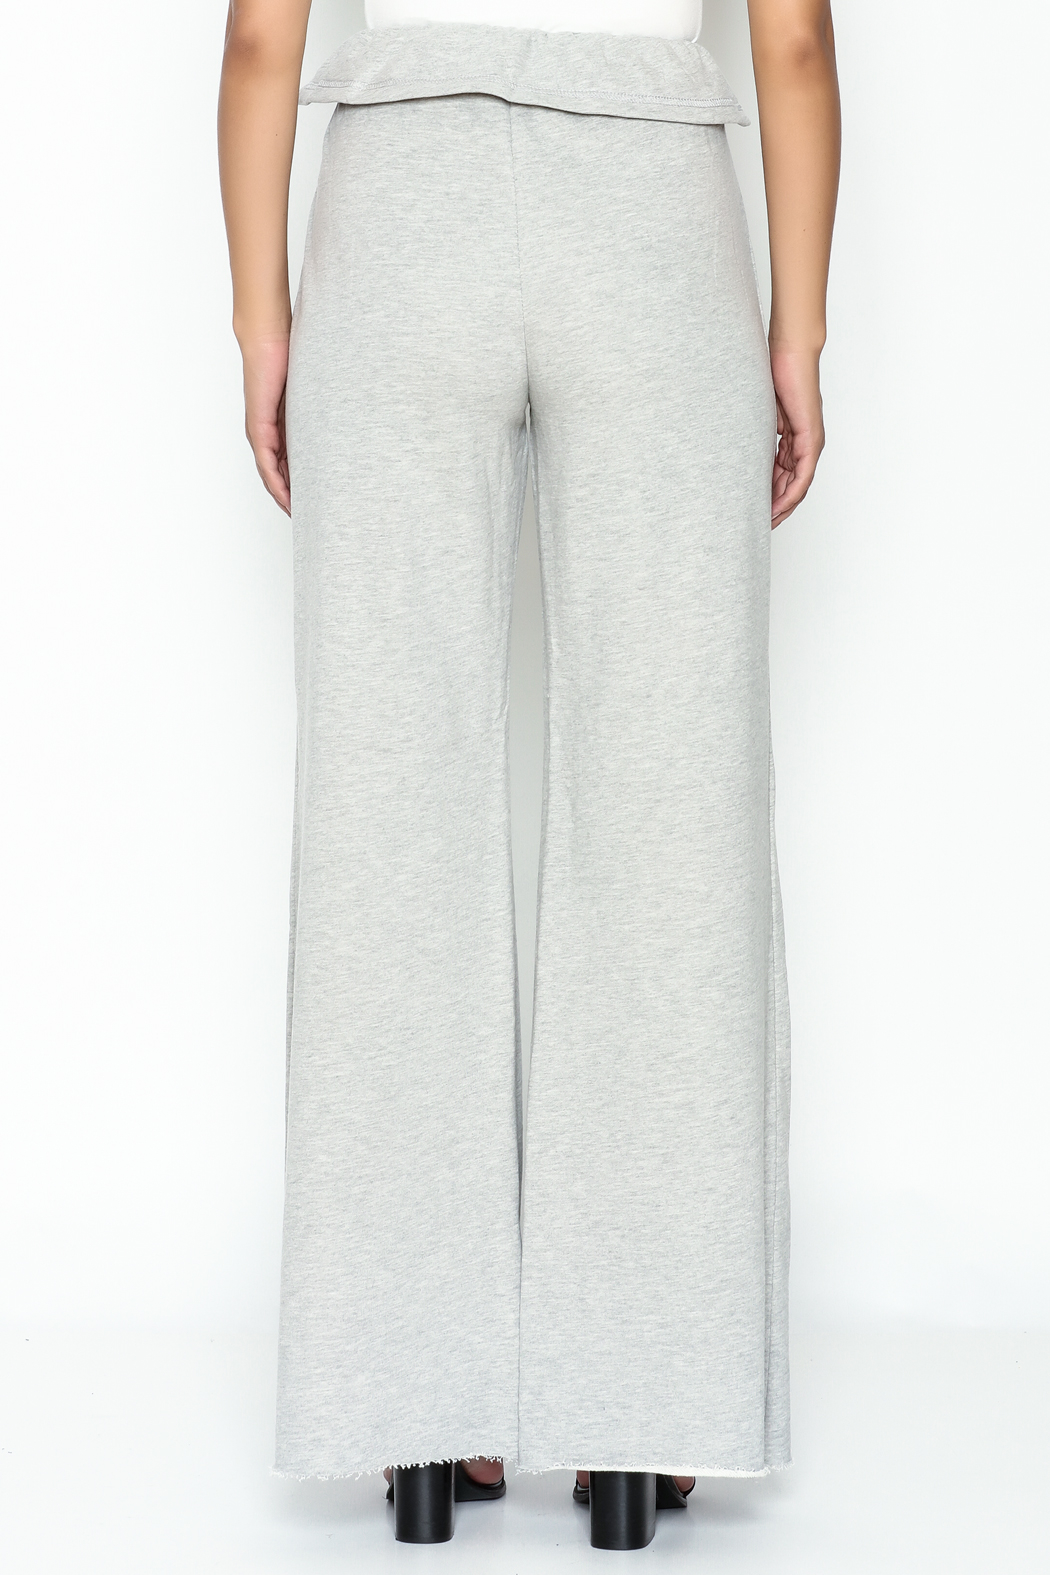 etophe Ruffle Waist Knit Pants - Back Cropped Image